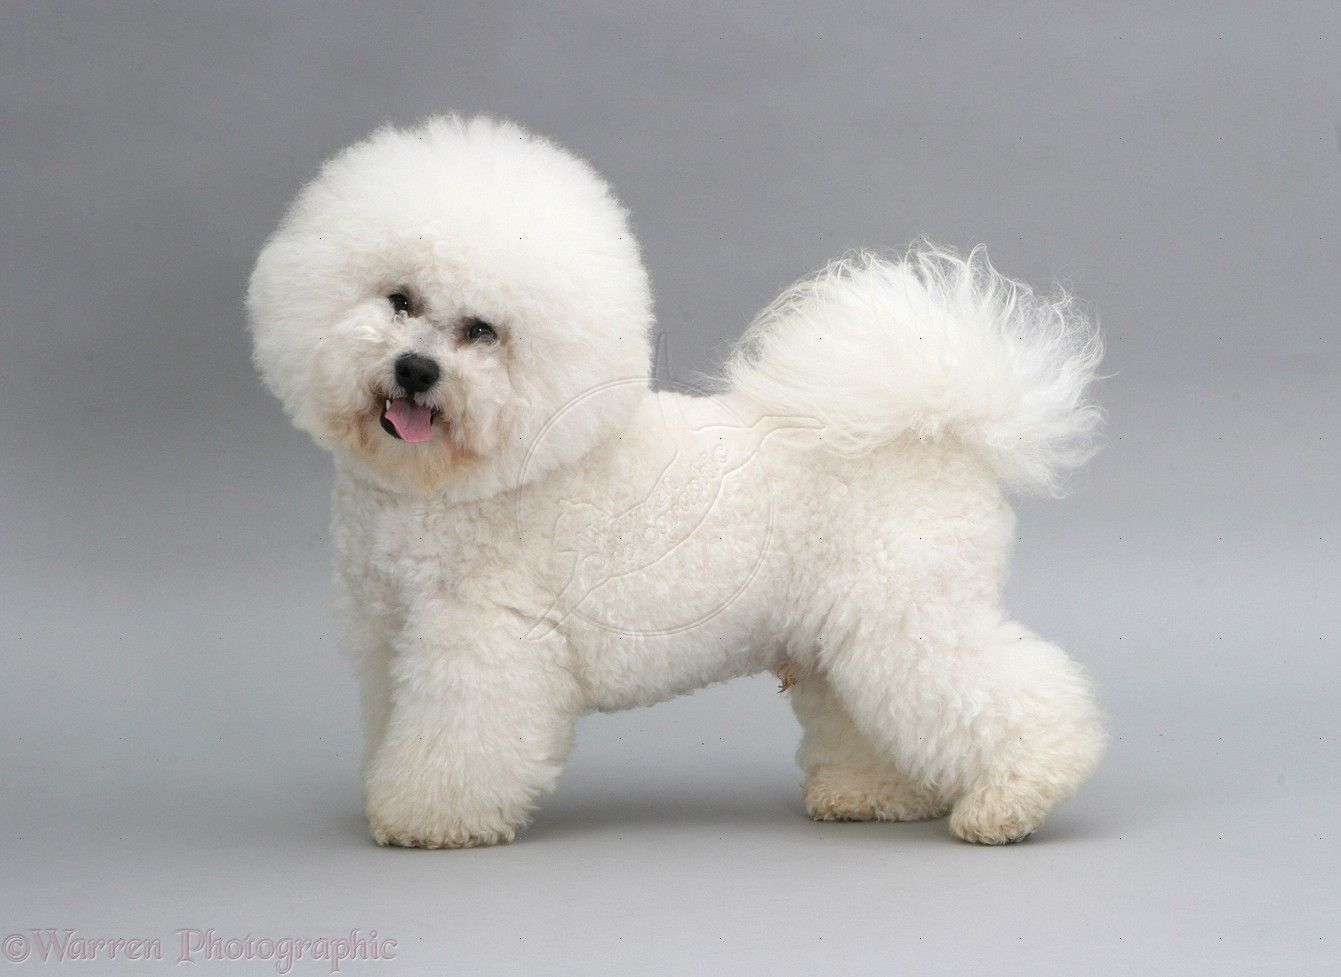 Akc Bichon Puppies For Sale Momsbichons Com Puppies For Sale